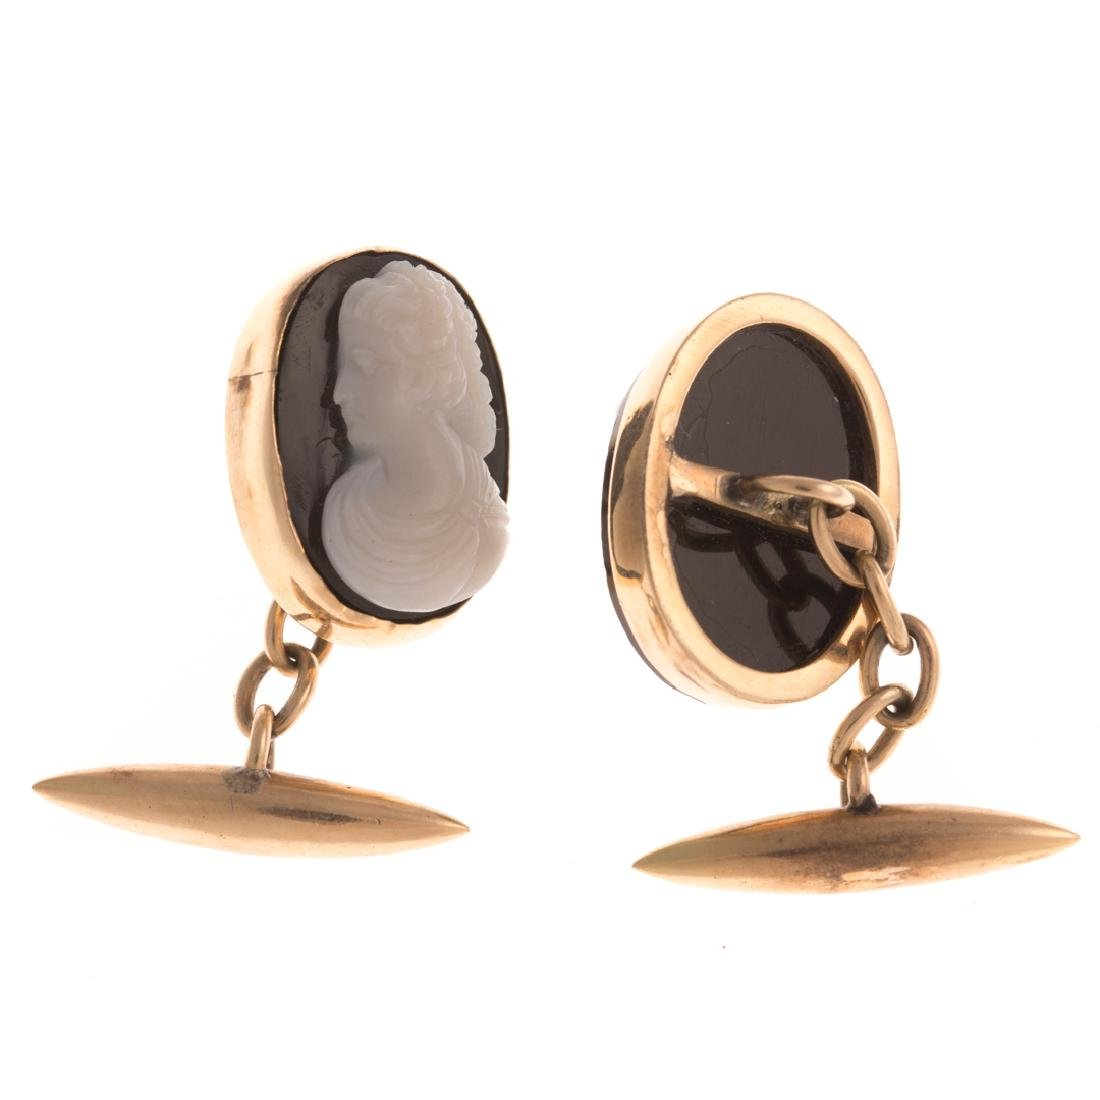 A Victorian Pendant with Cameo Cufflinks in 14K - 2